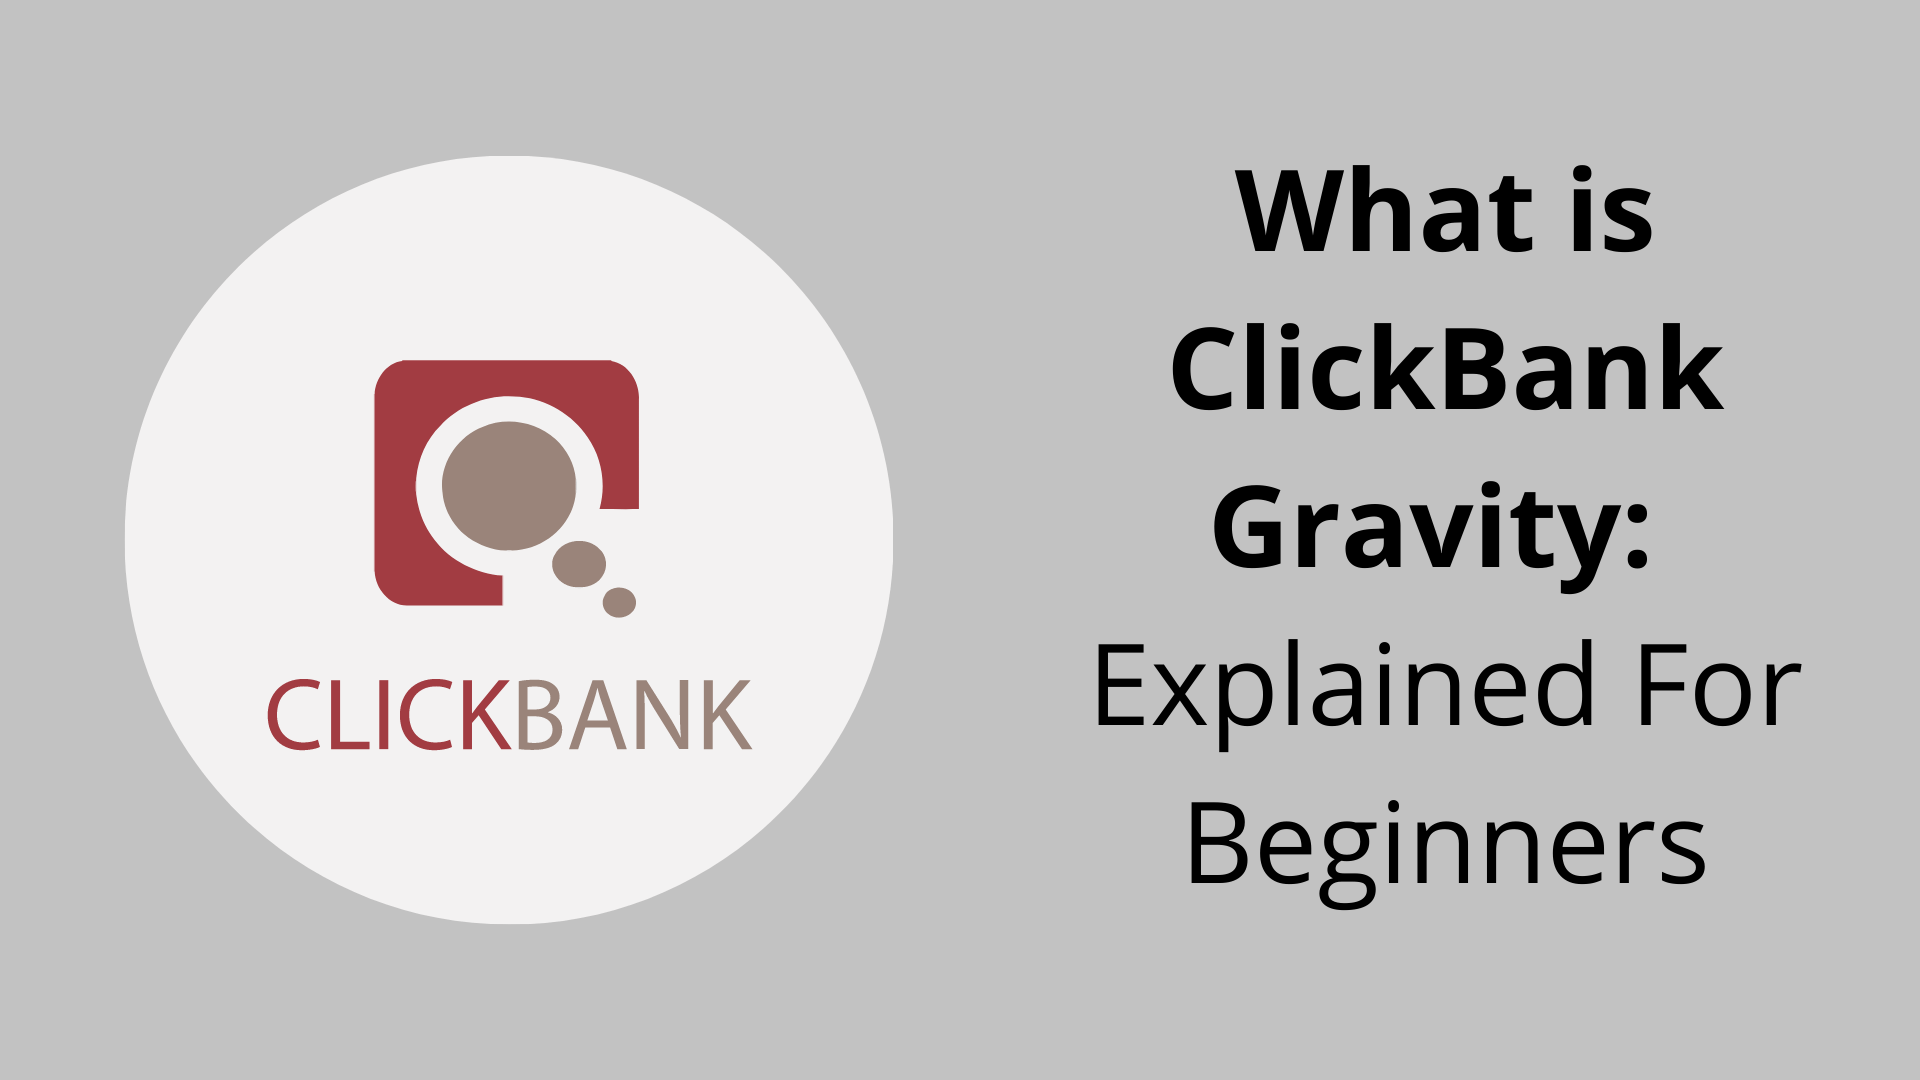 What Is ClickBank Gravity? What Does It Mean On ClickBank